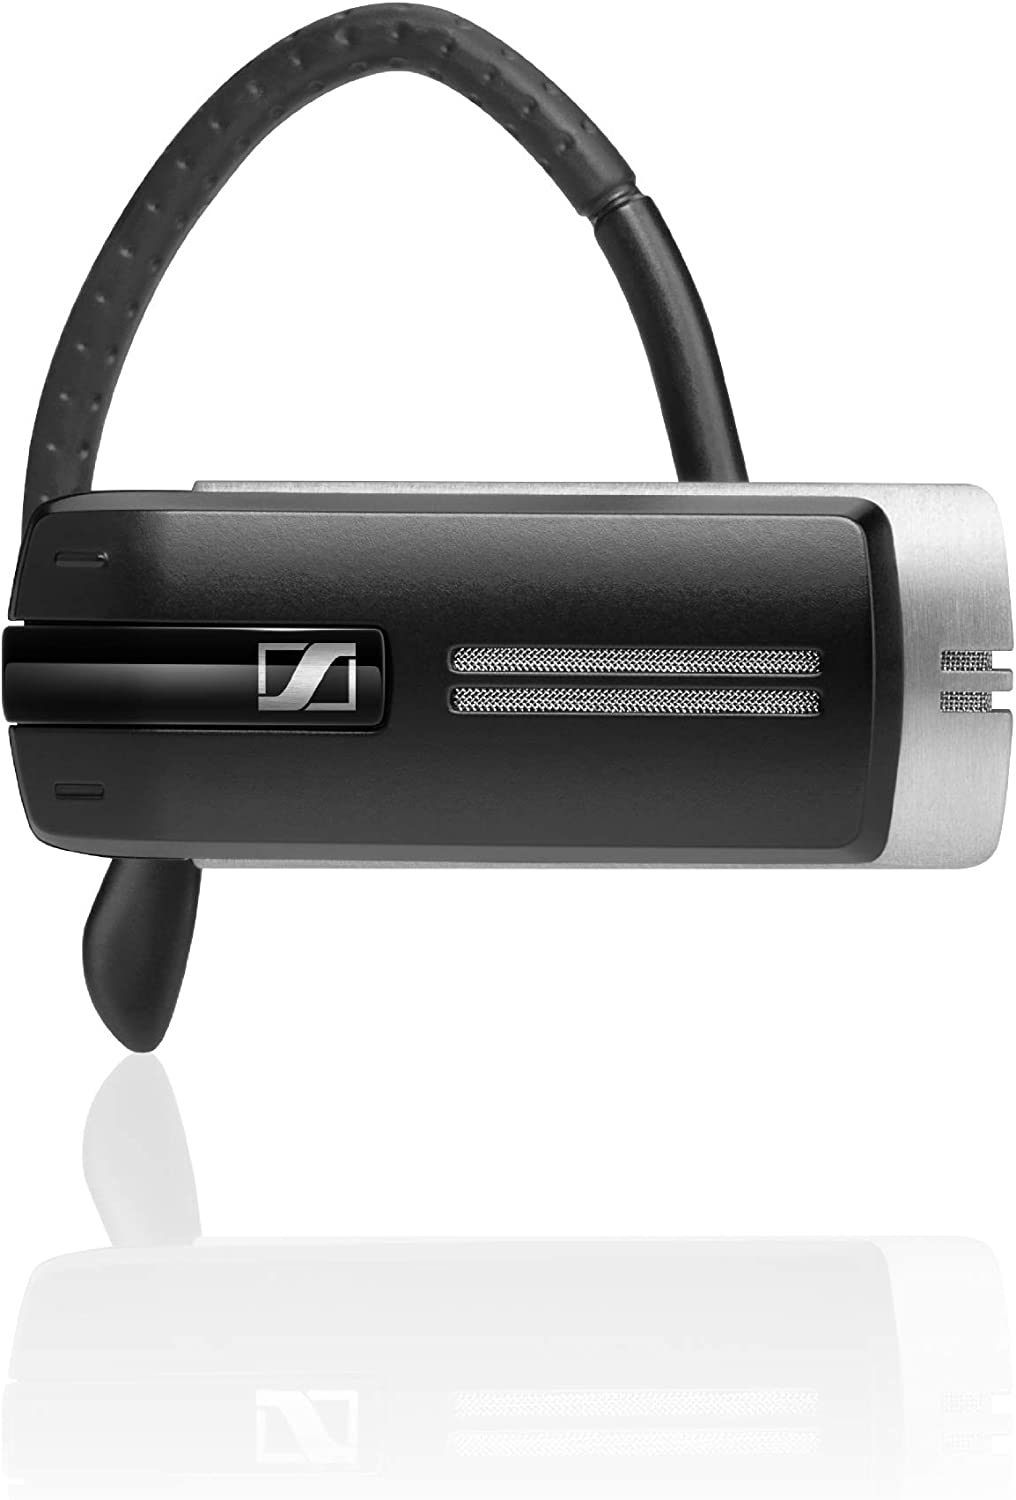 Sennheiser Presence Uc (504576) - Dual Connectivity, Single-Sided Bluetooth Headset For Mobile